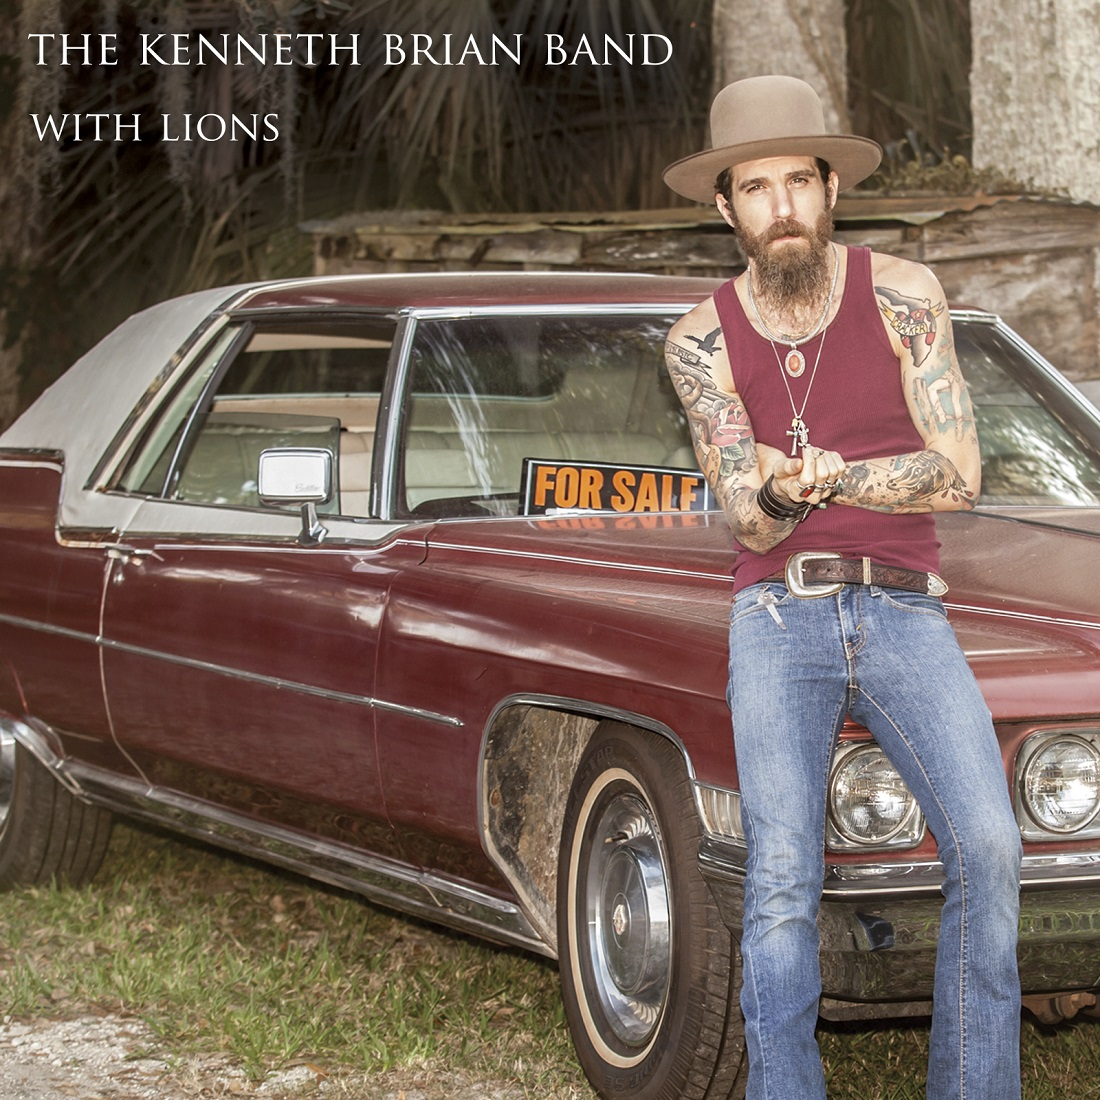 REBELS WITHOUT A PAUSE: THE KENNETH BRIAN BAND RULES MUSIC KINGDOM